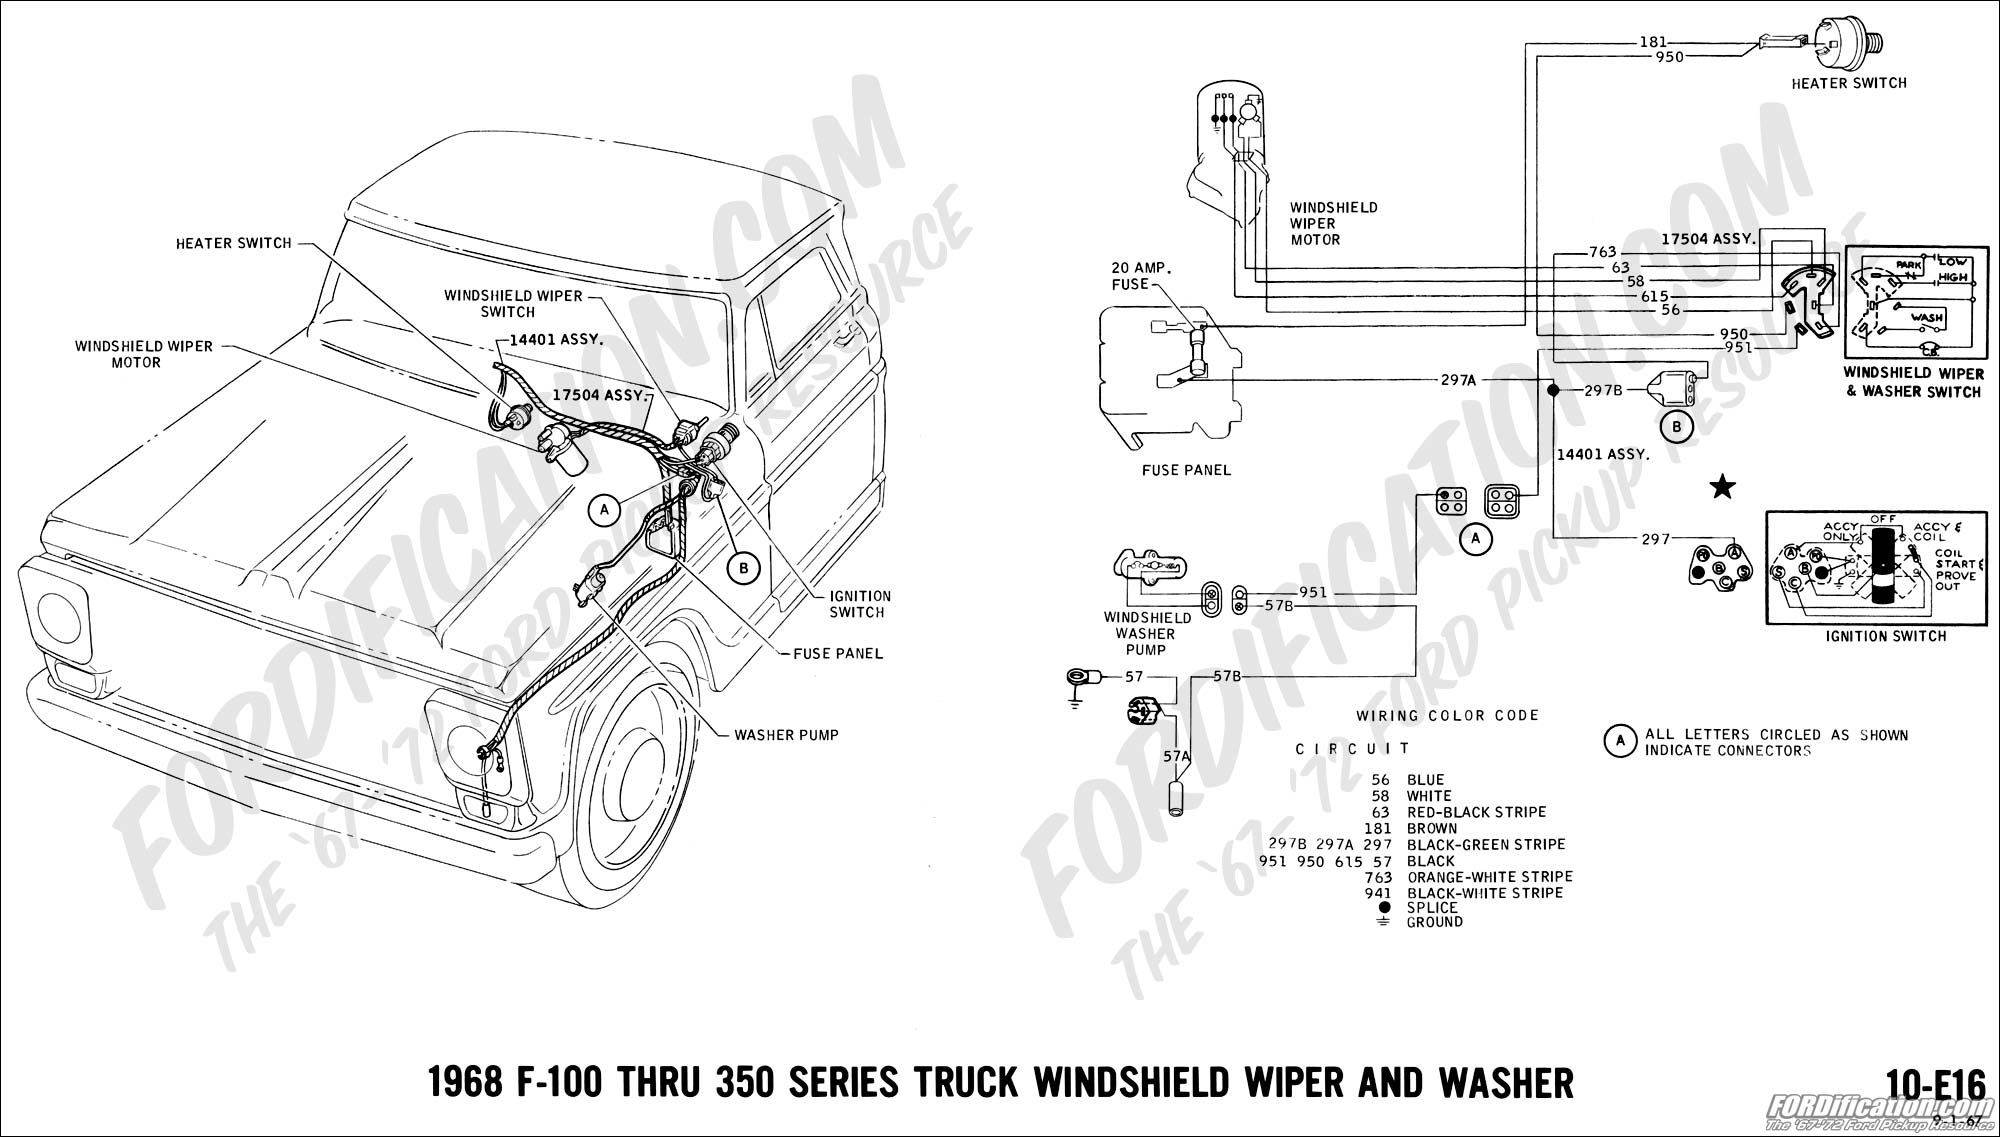 1968 f100 fuse box simple wiring diagram 1965 f100 fuse box wiring diagram libraries 1959 f100 1968 f100 fuse box